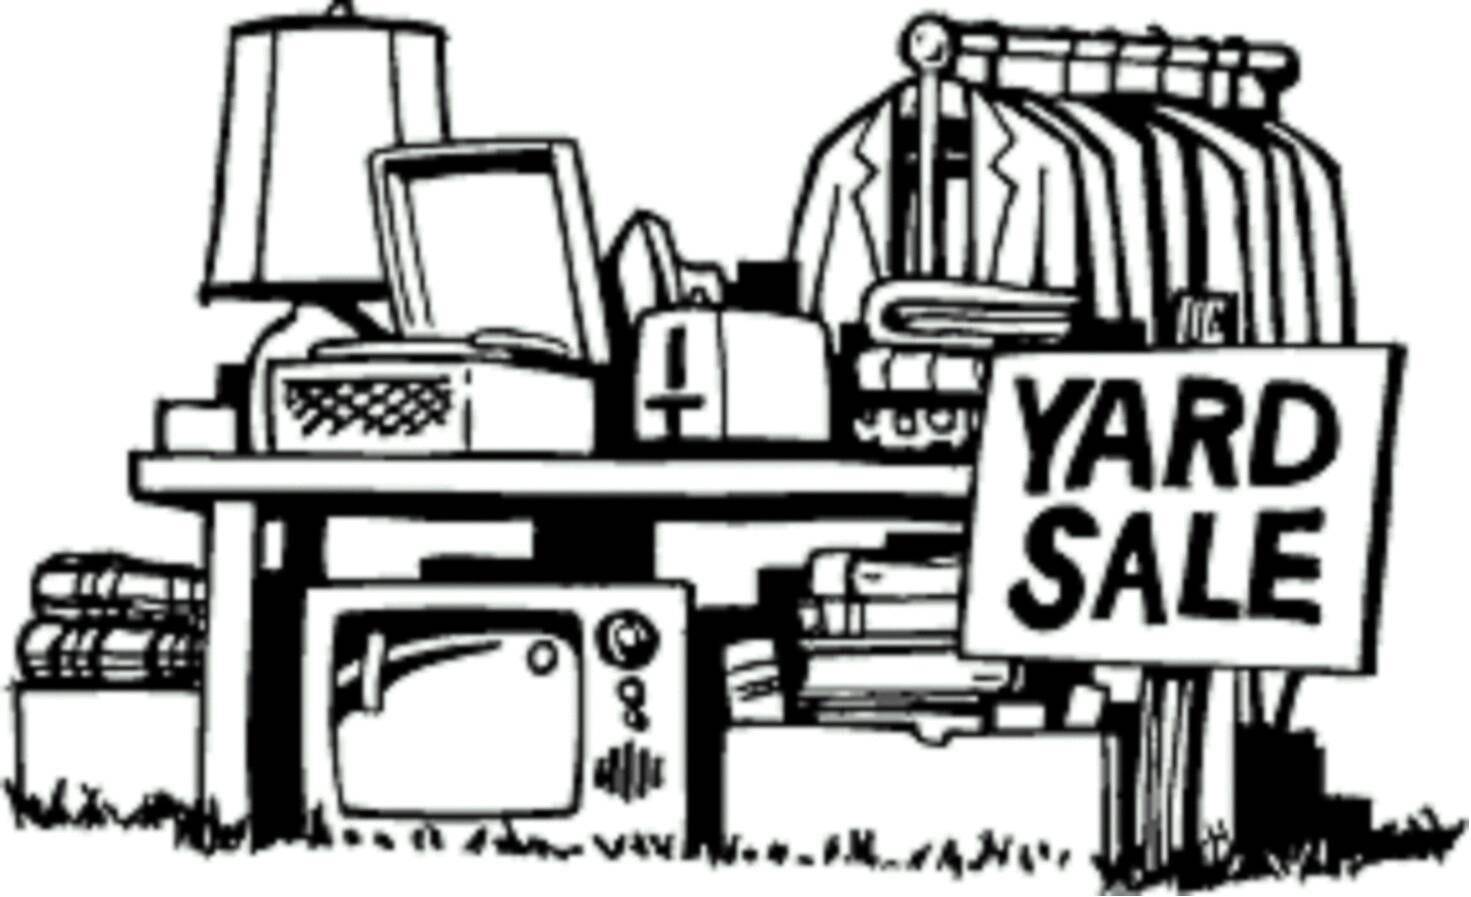 Have a yard sale . Sell your old items that you don't use anymore and maybe one new item that you really want money for .